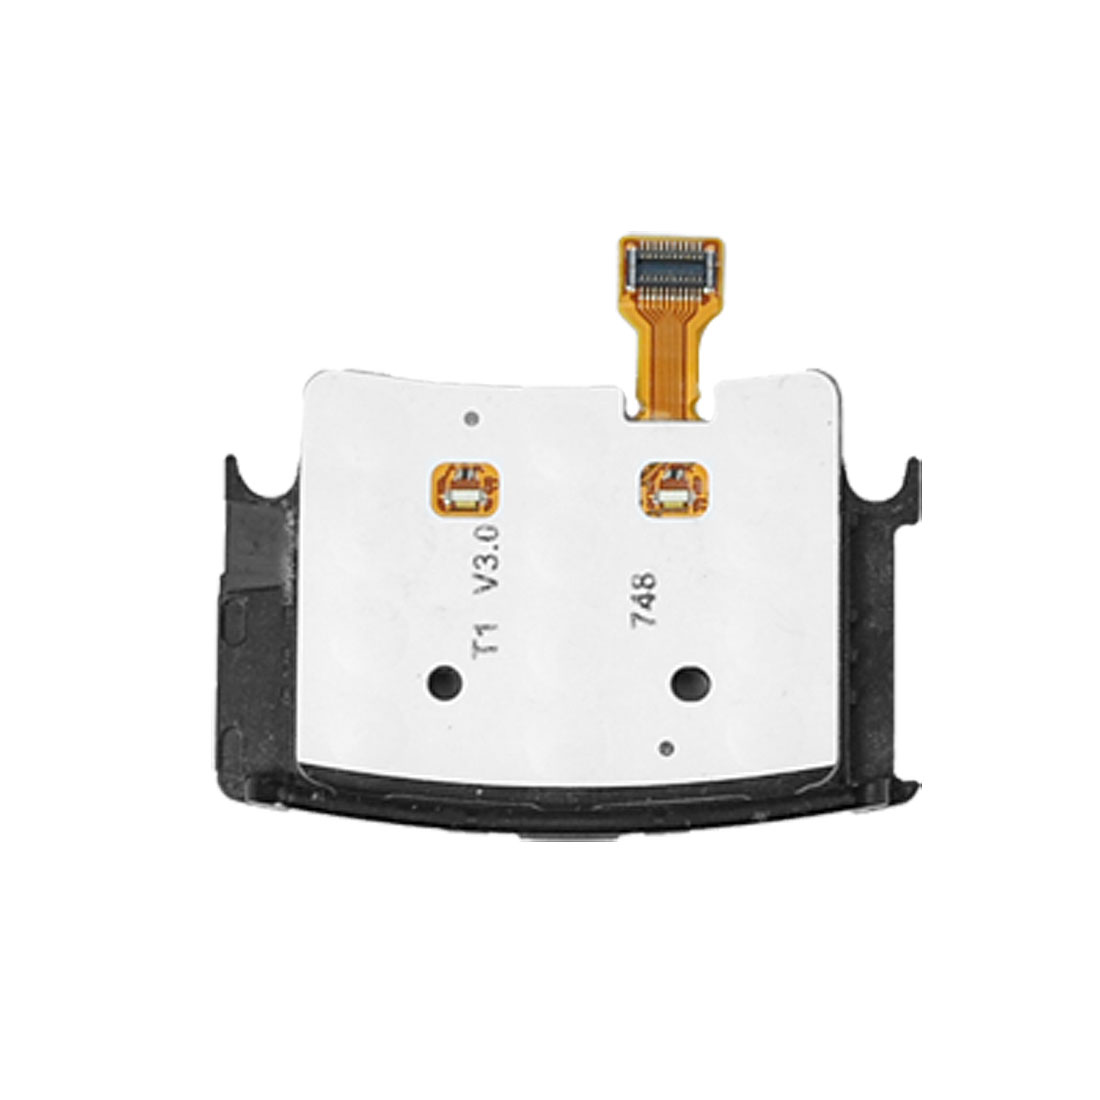 Replacement Phone Keypad Flex Cable for Nokia 6500s